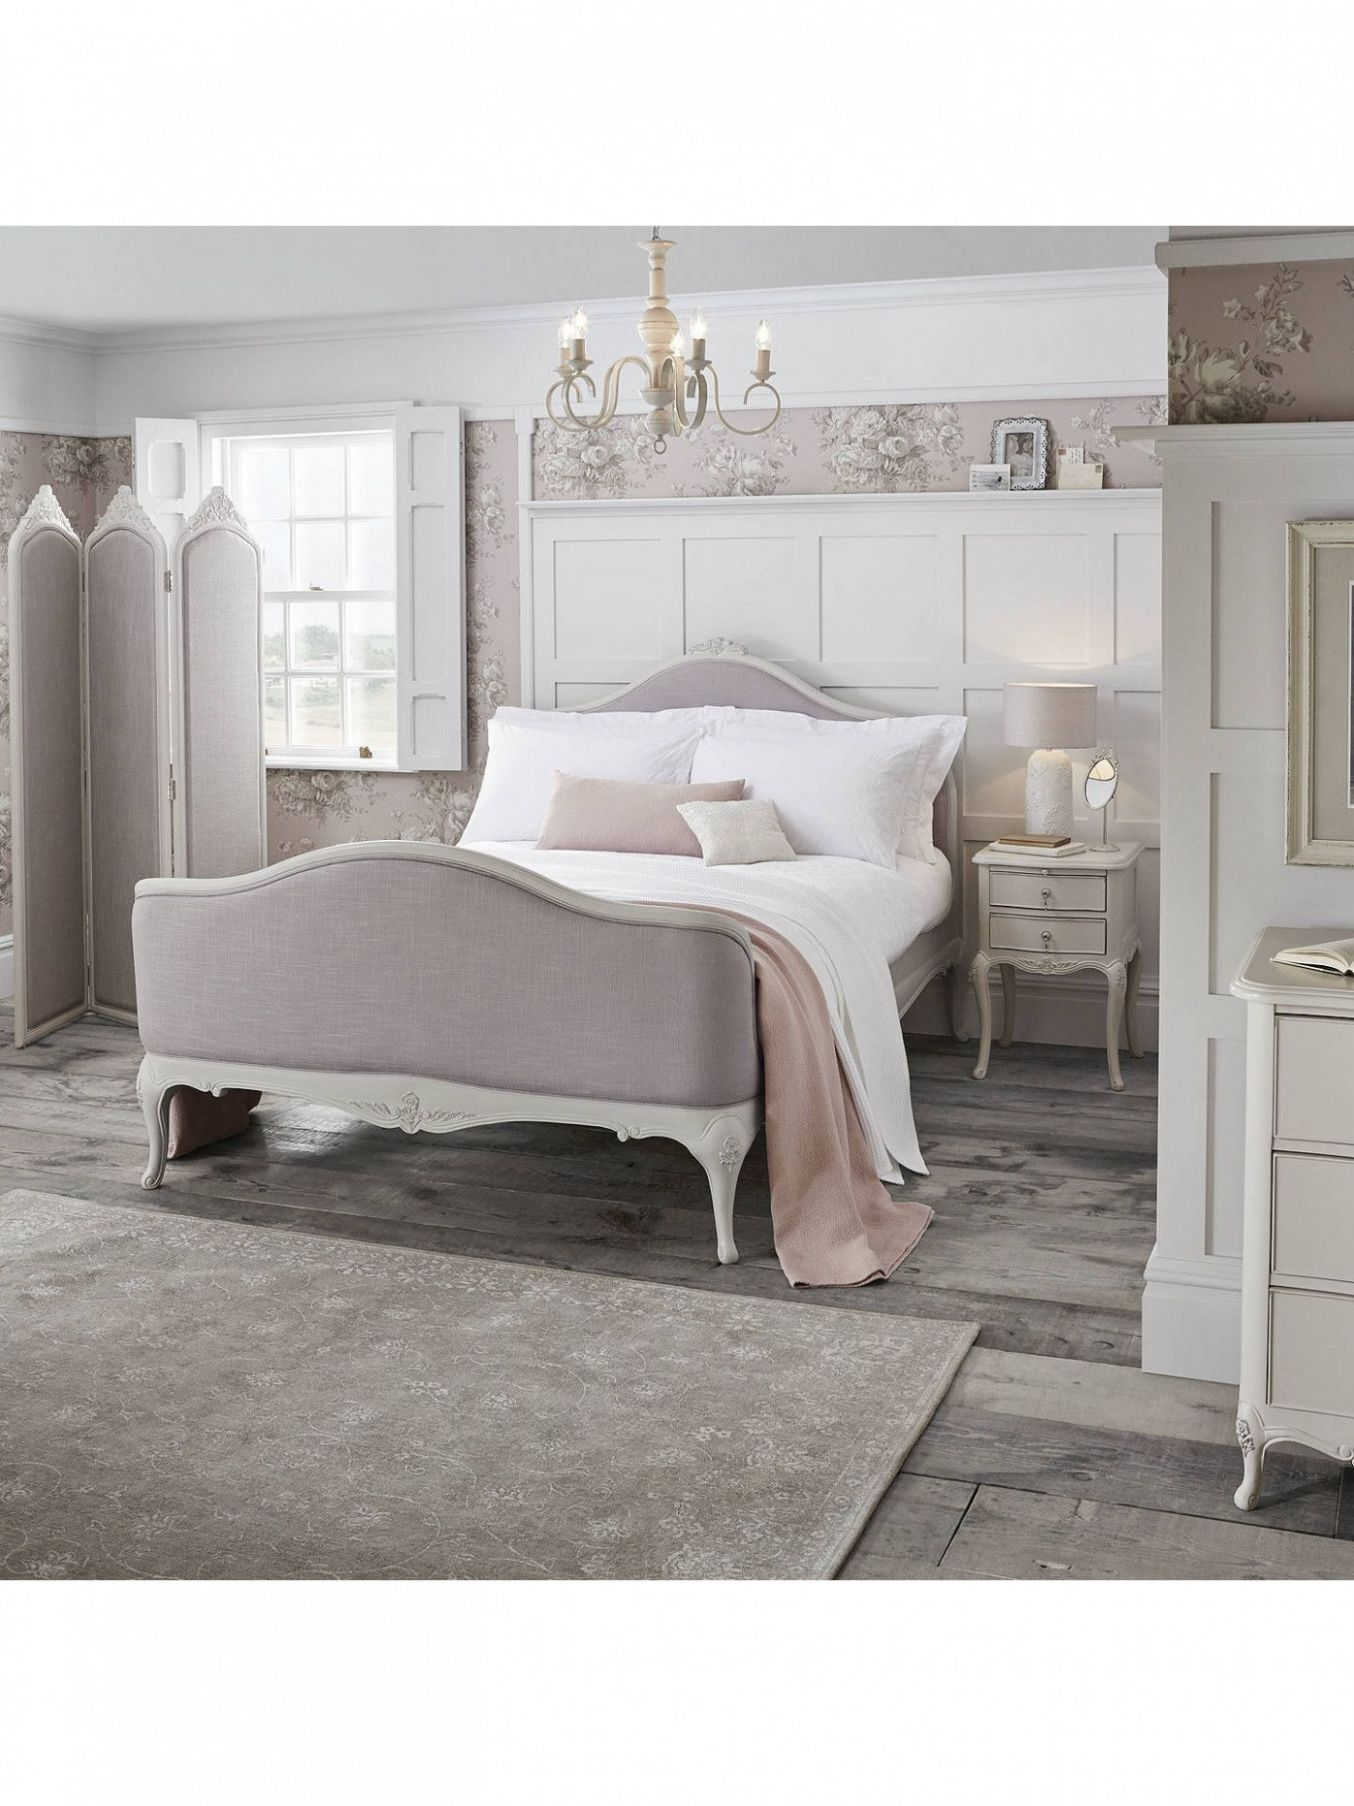 11 John Lewis Bedroom Ideas 11 John Lewis Bedroom Ideas - John ...